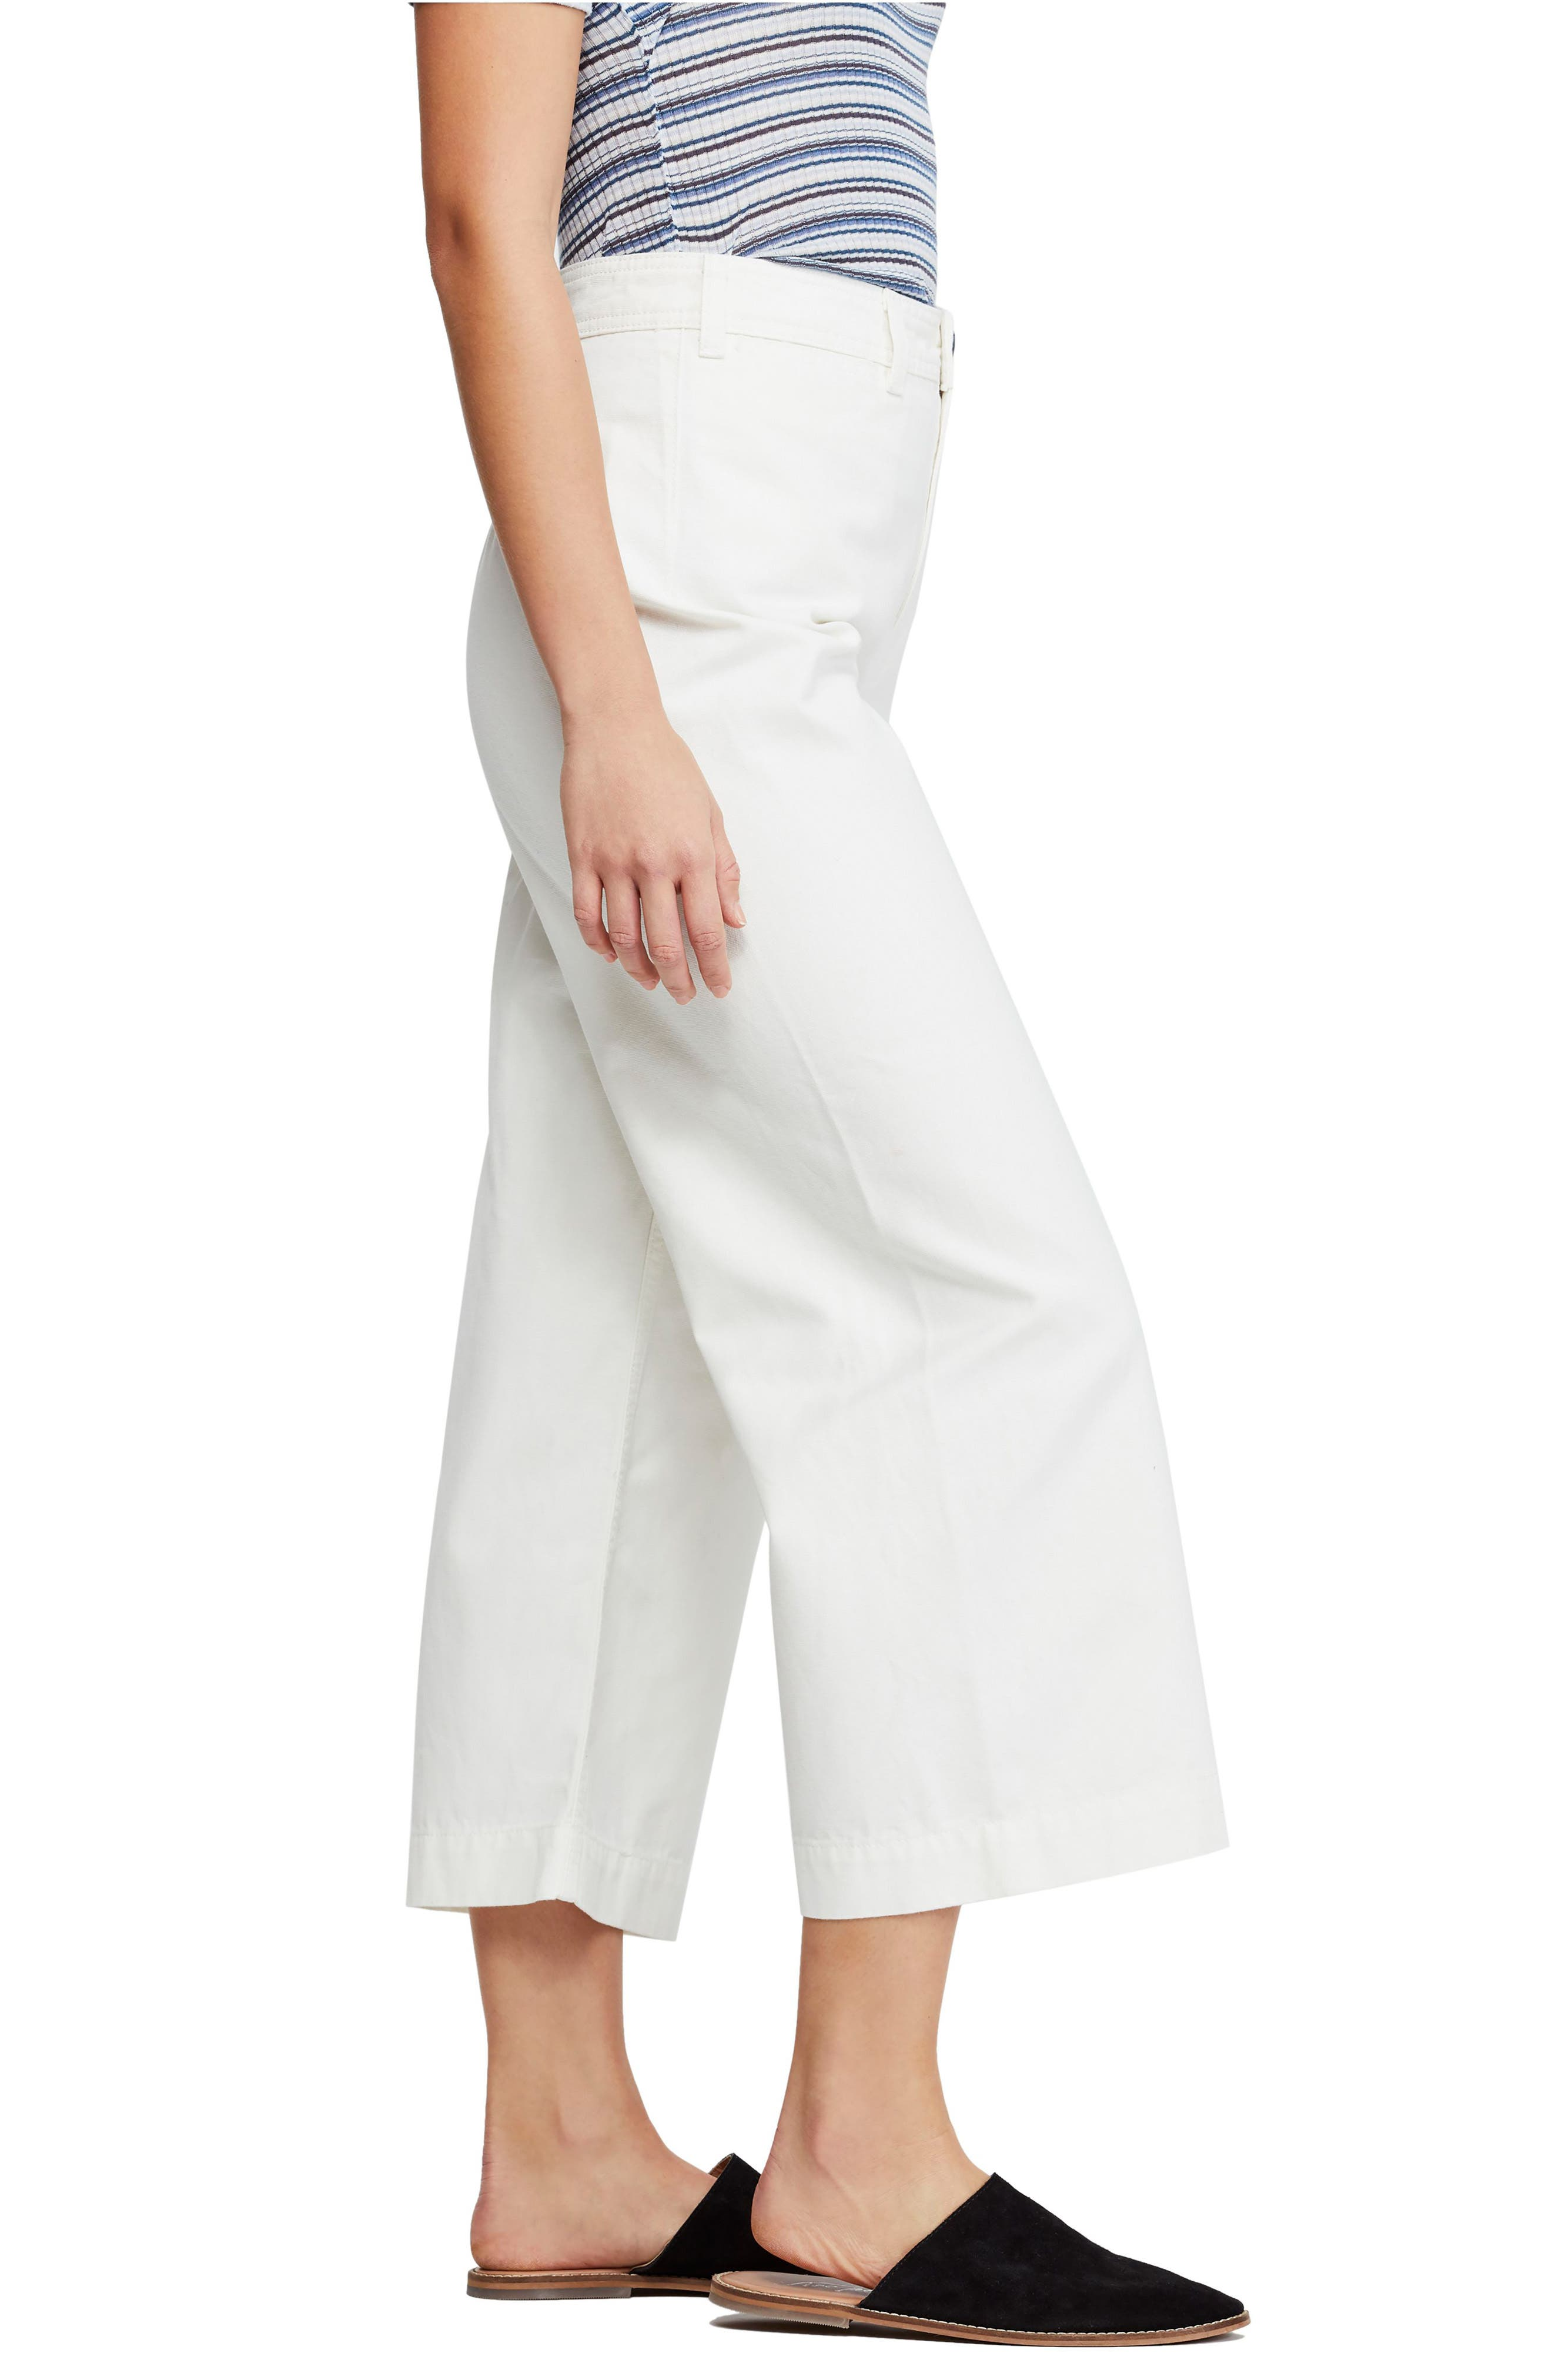 FREE PEOPLE, We the Free by Free People Patti Crop Cotton Pants, Alternate thumbnail 4, color, IVORY